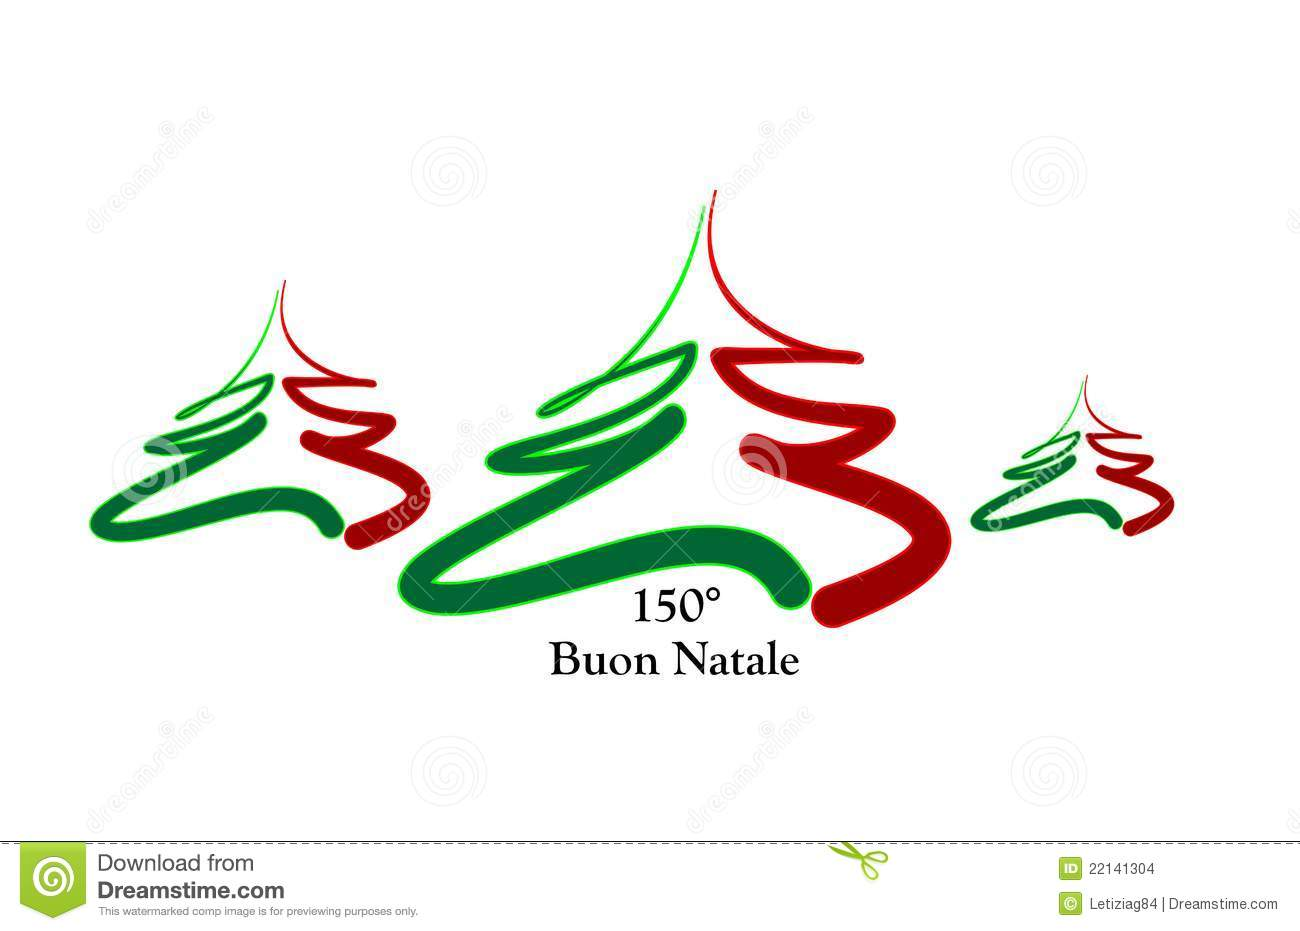 Merry Christmas Italy stock vector. Illustration of green - 22141304